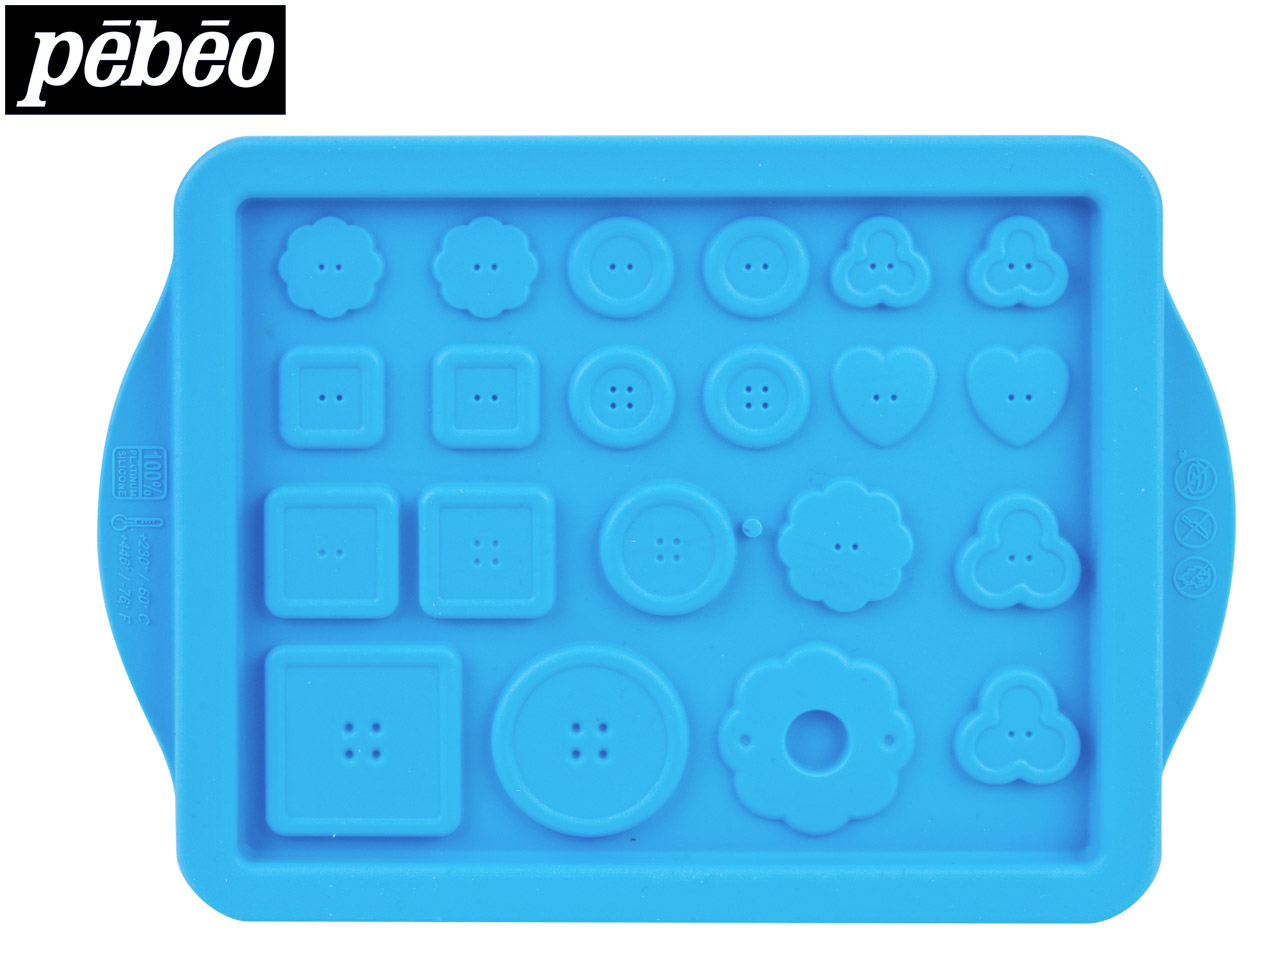 Pebeo Buttons Silicone Mould